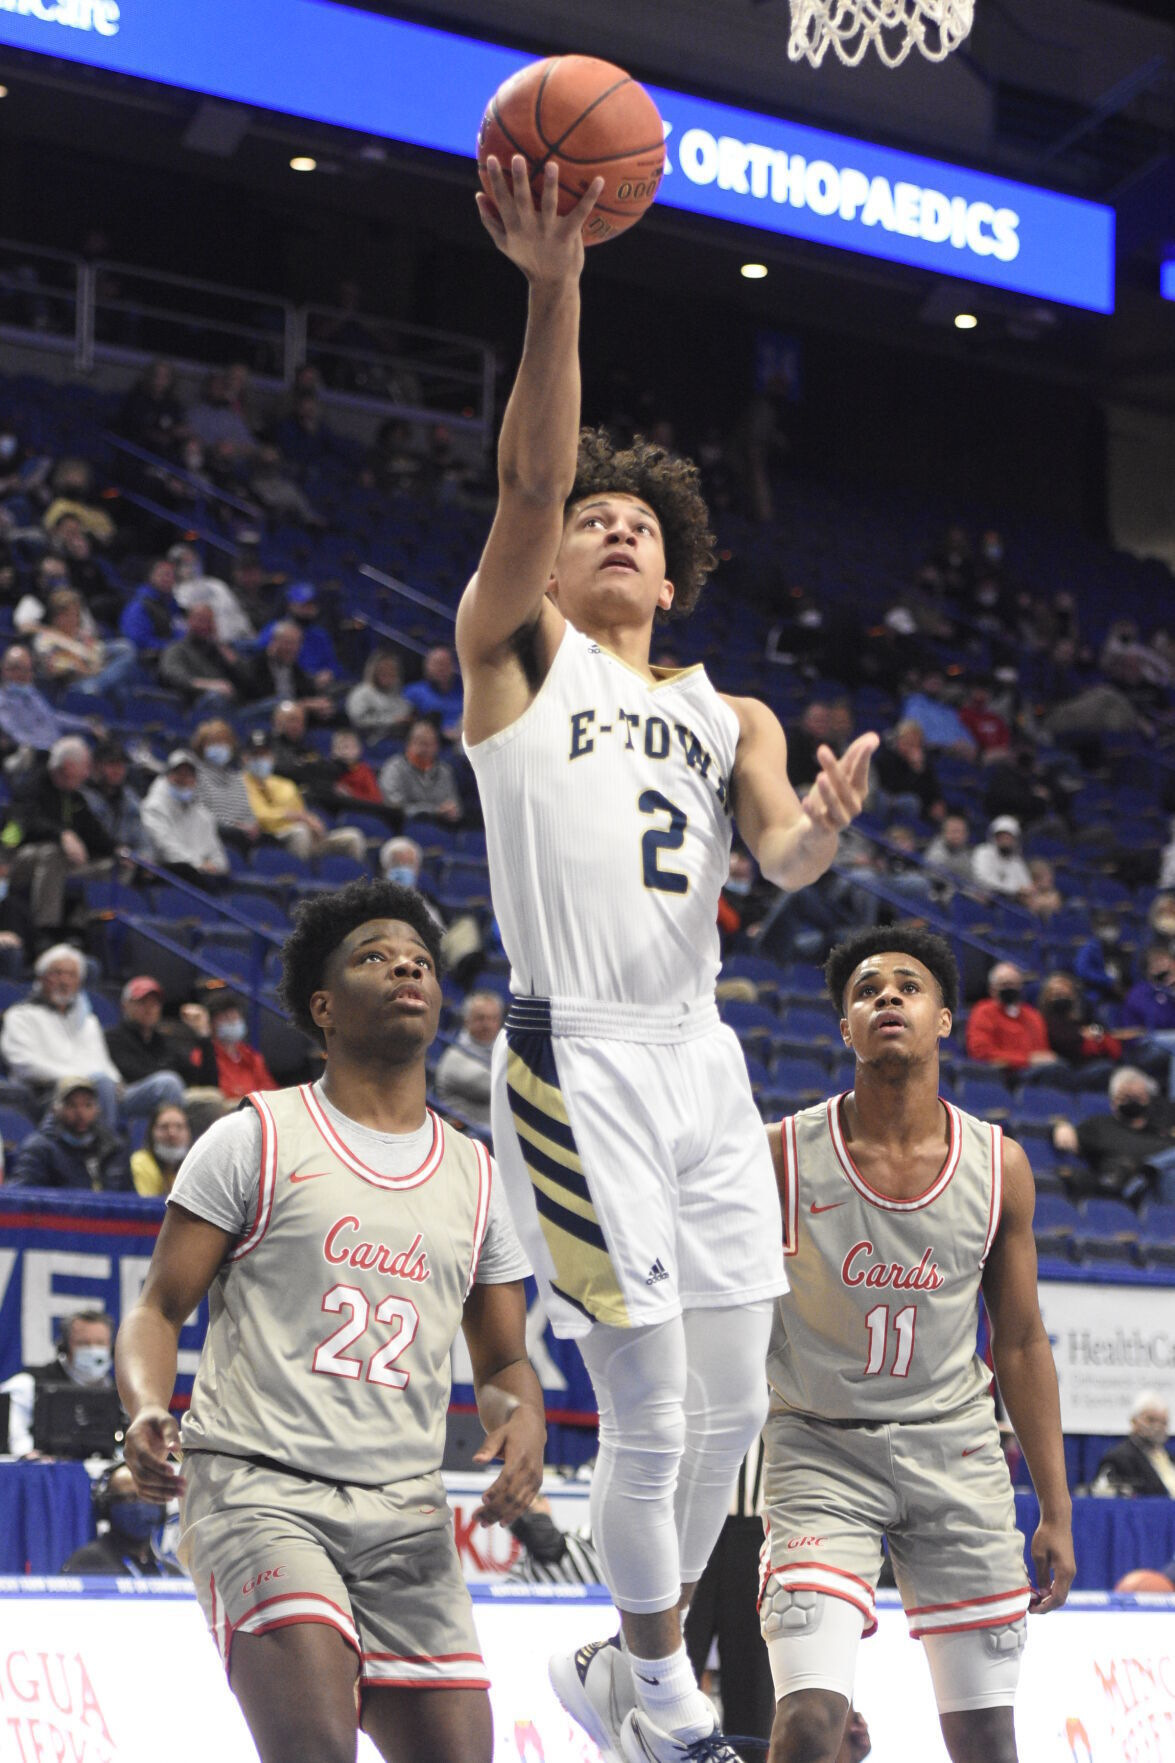 ALL-AREA BOYS' BASKETBALL: E'town's Franklin takes top honor